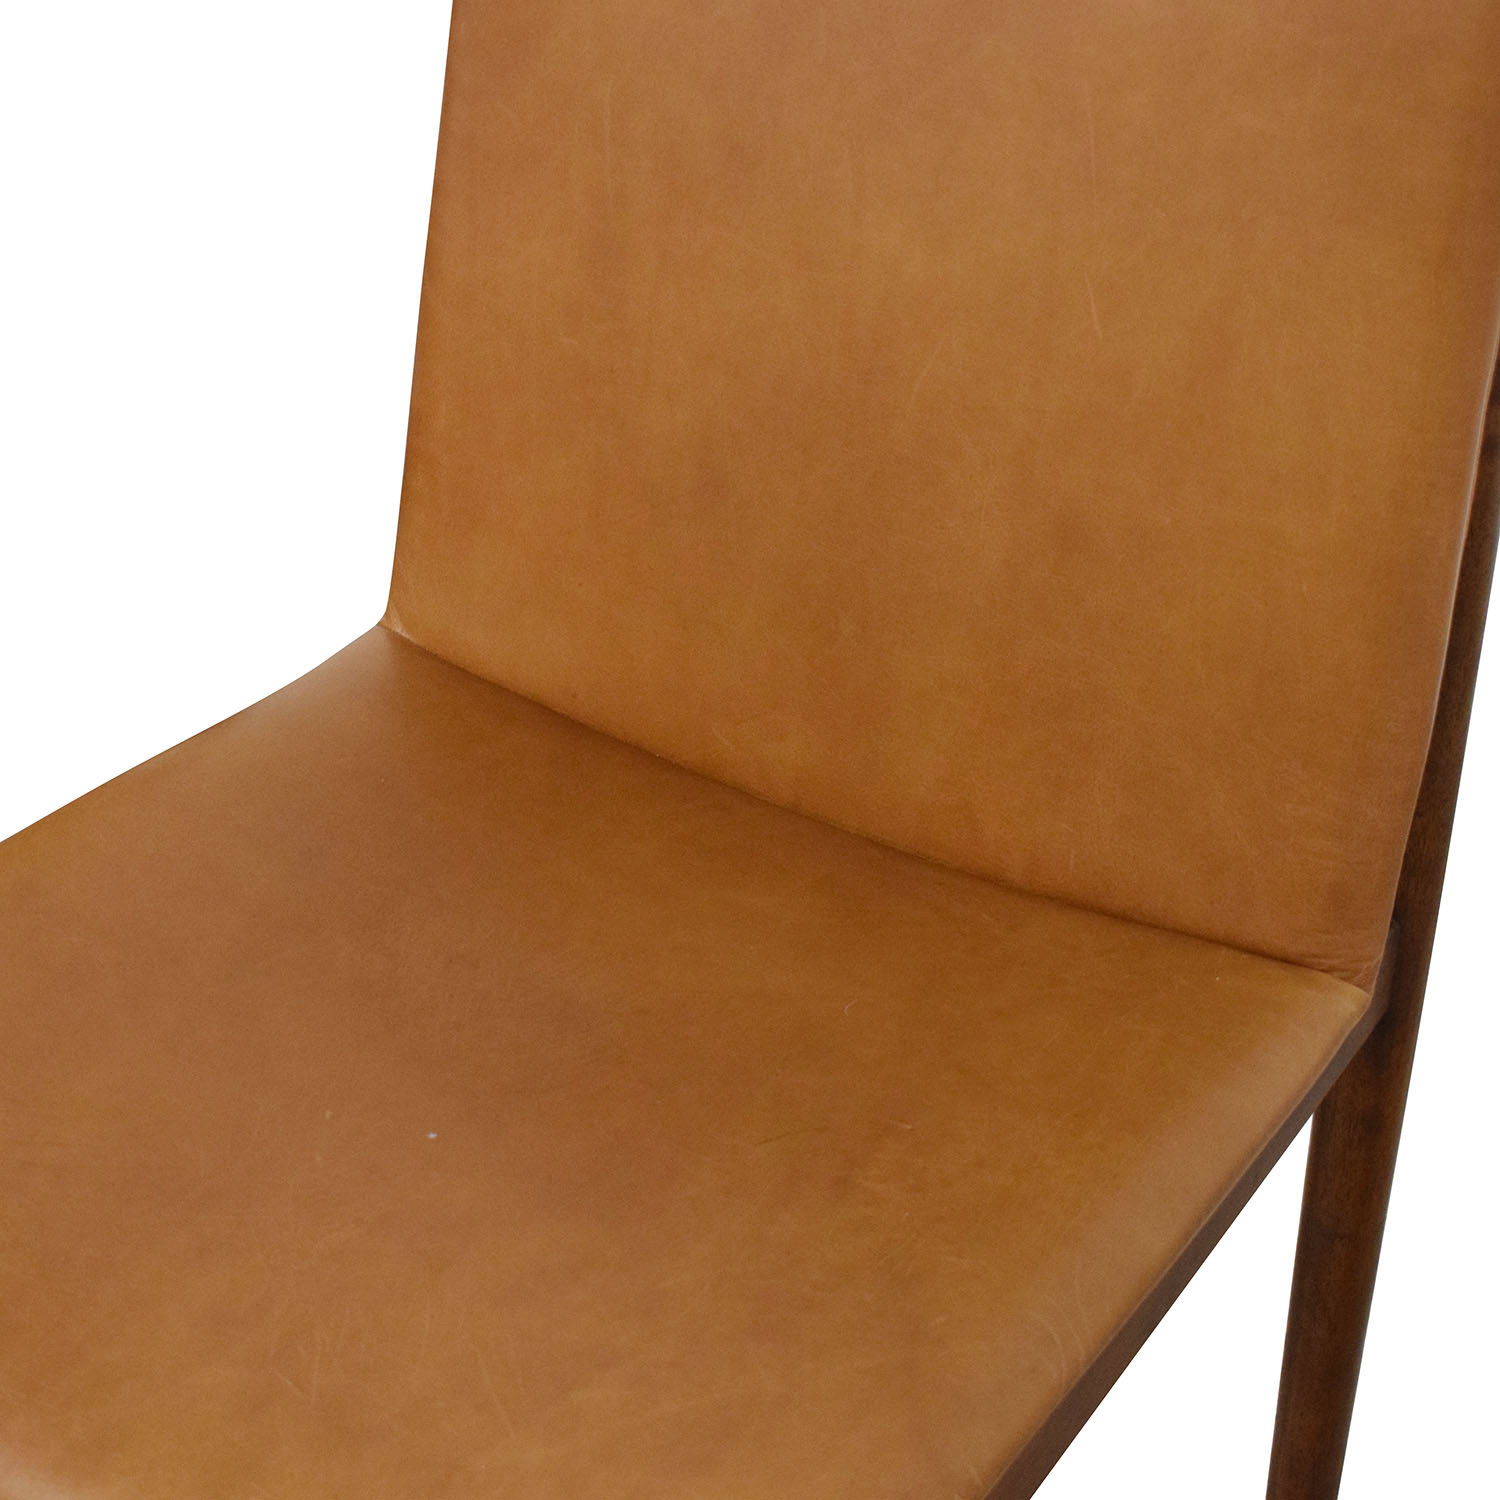 West Elm West Elm Framework Leather Dining Chairs brown